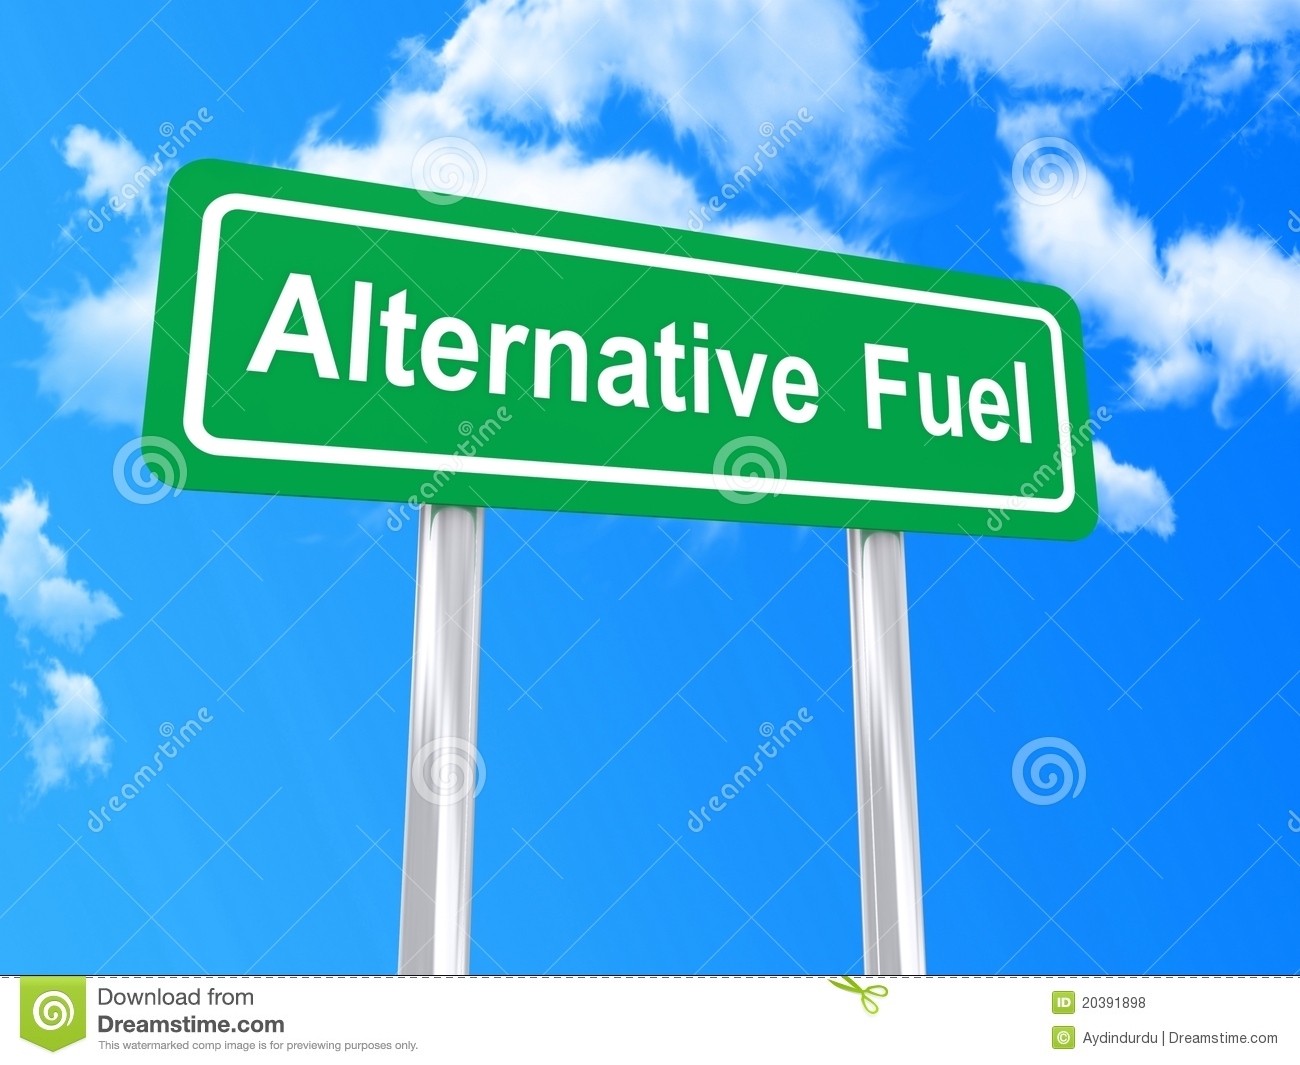 Http Www Dreamstime Com Royalty Free Stock Photos Alternative Fuel Sign Image20391898